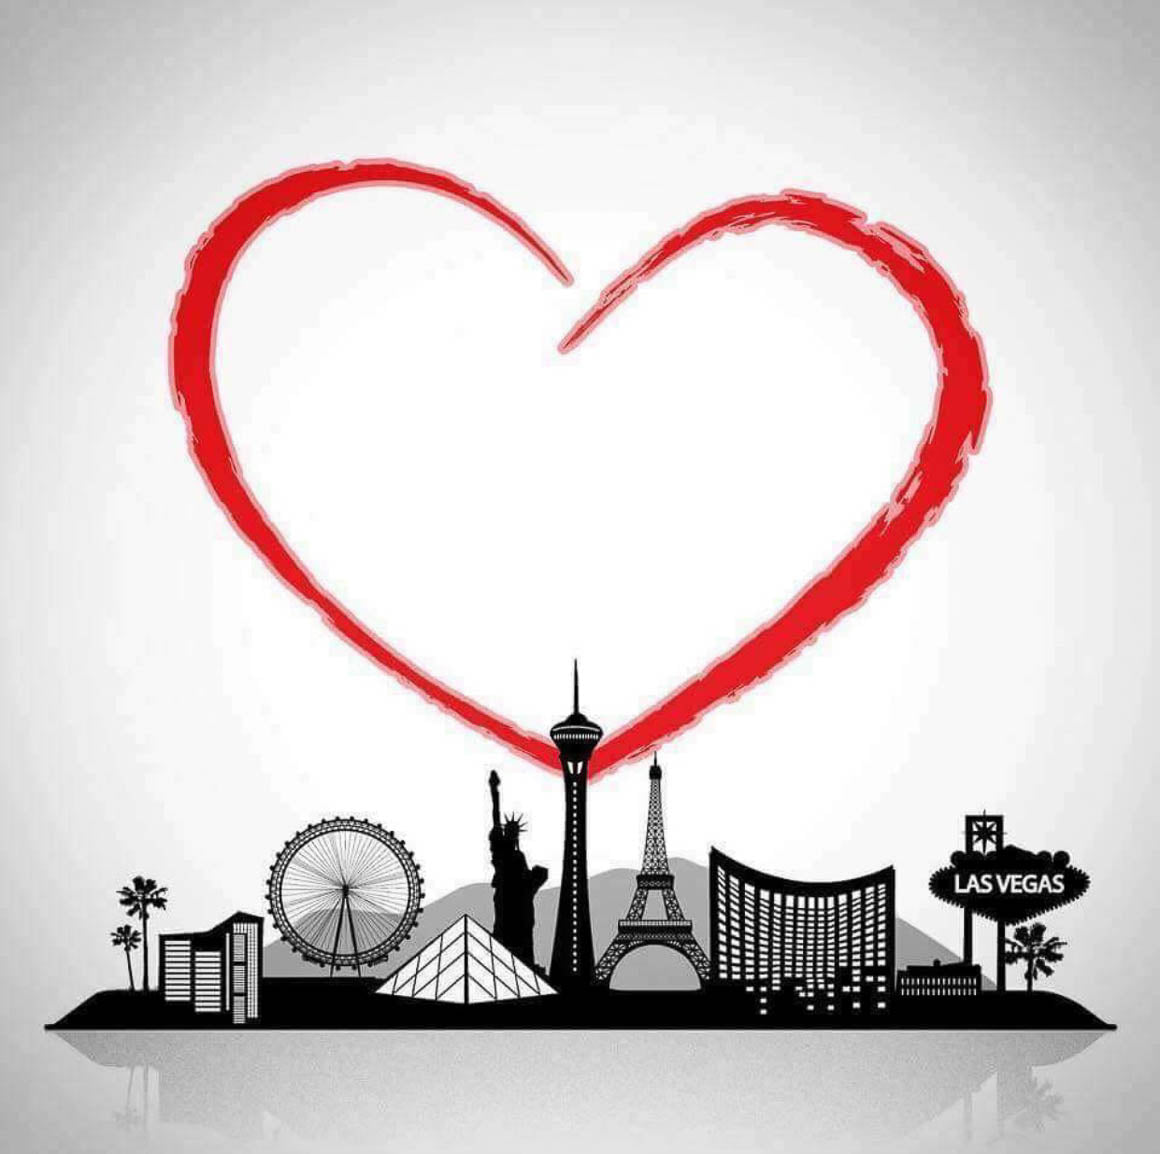 VEGAS STRONG, Remembering October 1, 2017 Lavish Three 3